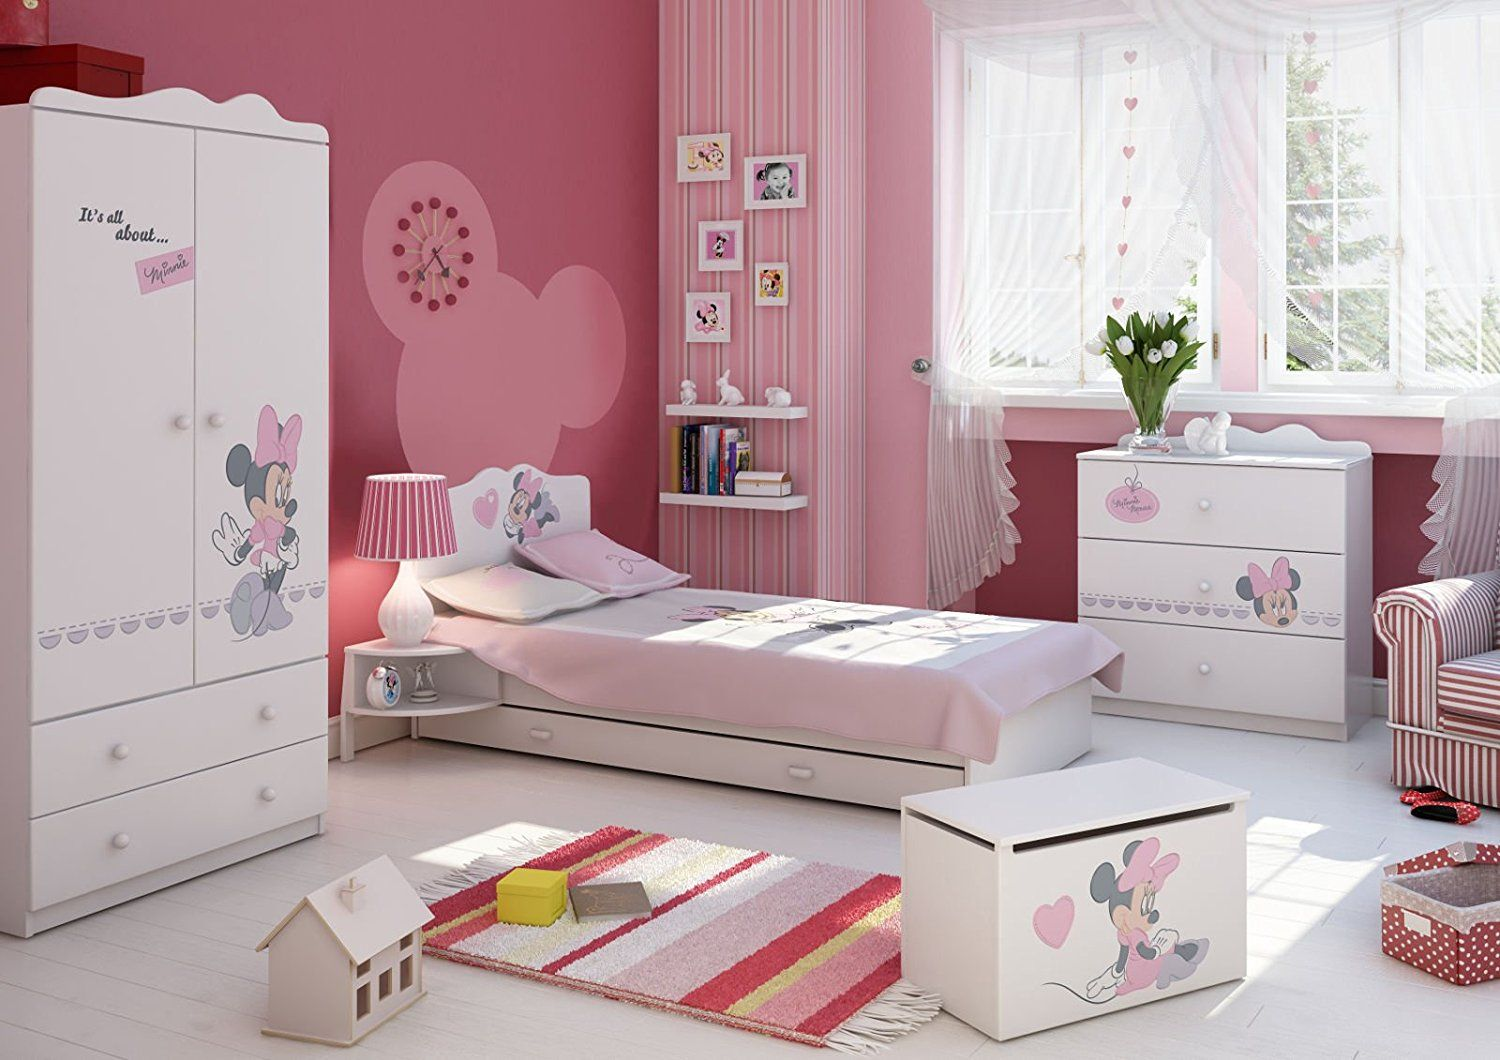 Traumhaft sch nes minnie mouse kinderzimmer kinderm bel minnie mouse komplettes - Minnie mouse kinderzimmer ...